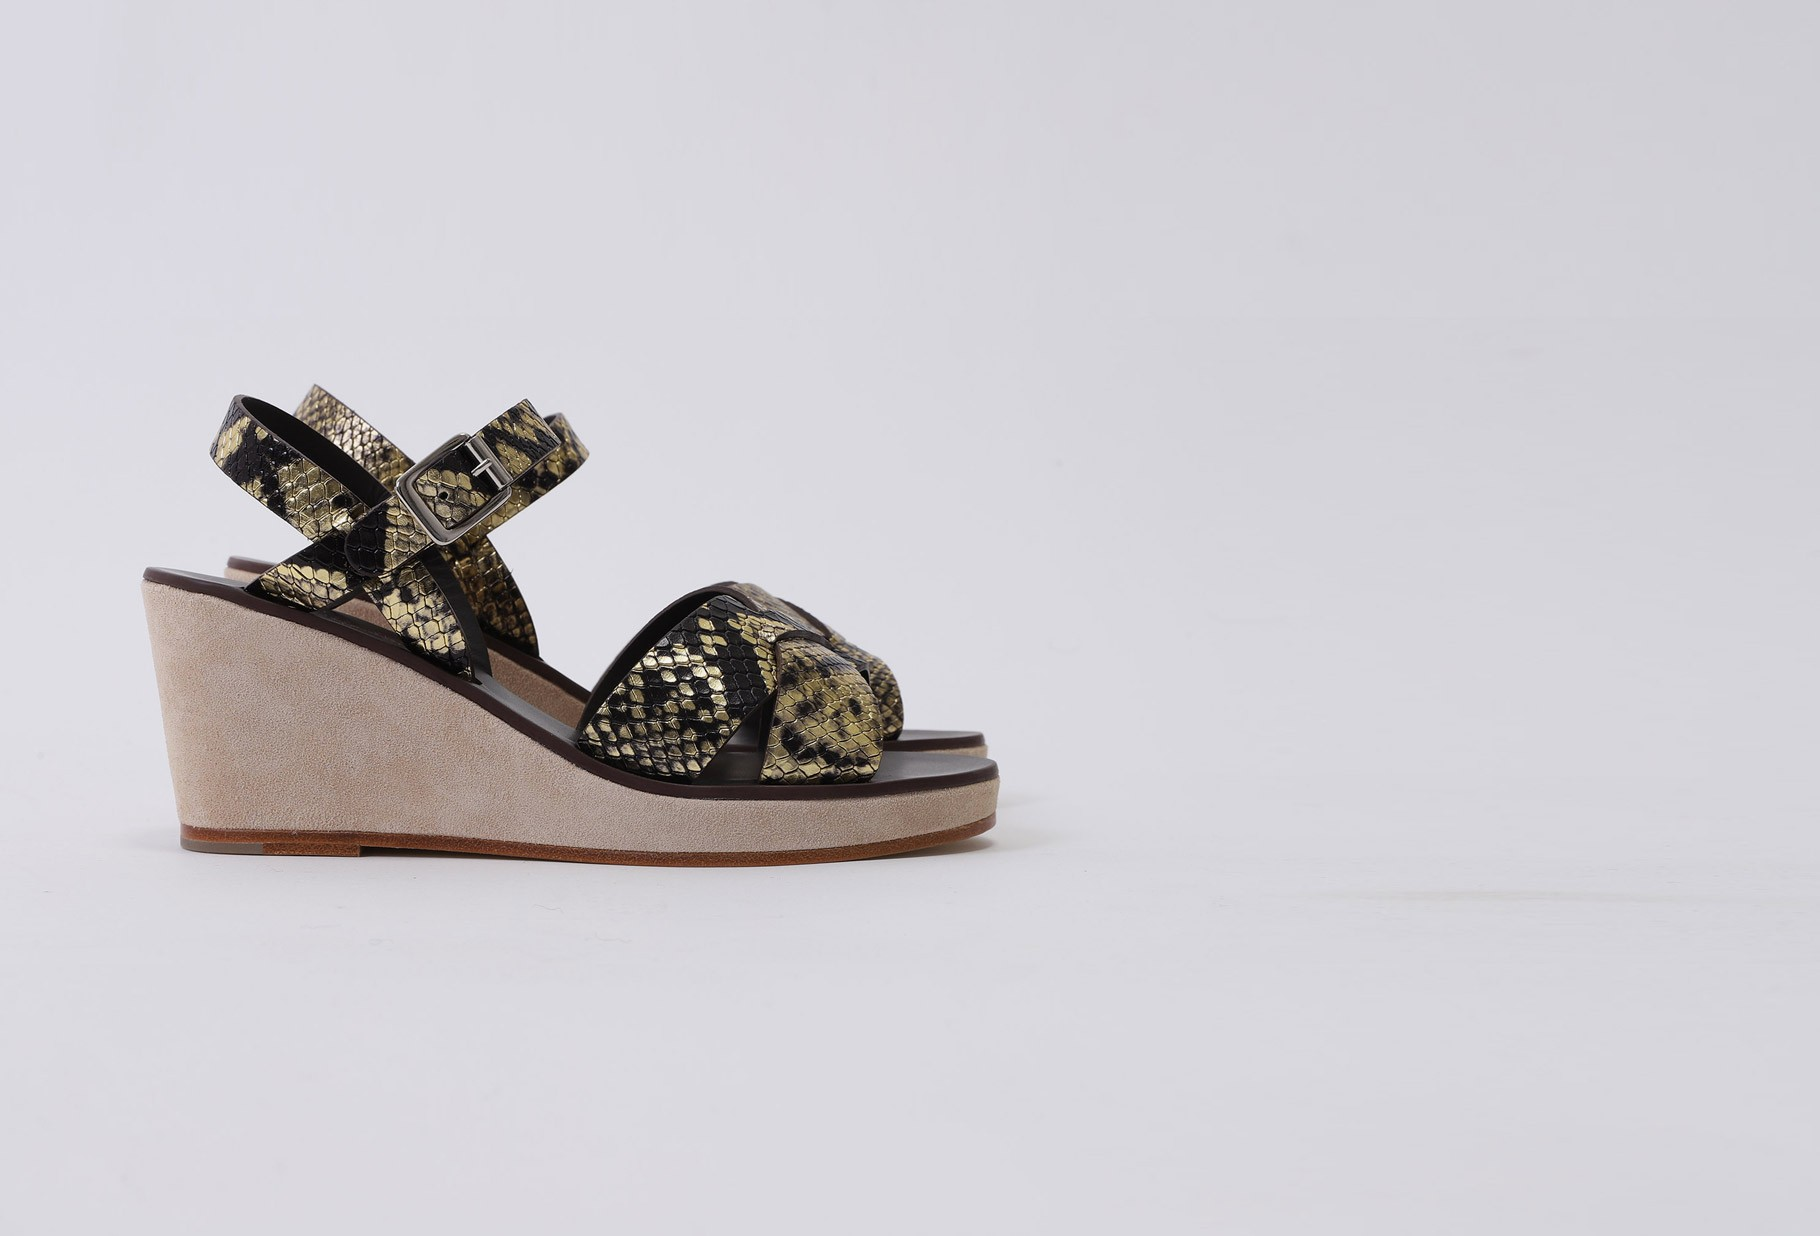 A.P.C. FOR WOMAN / Sandales judith Or